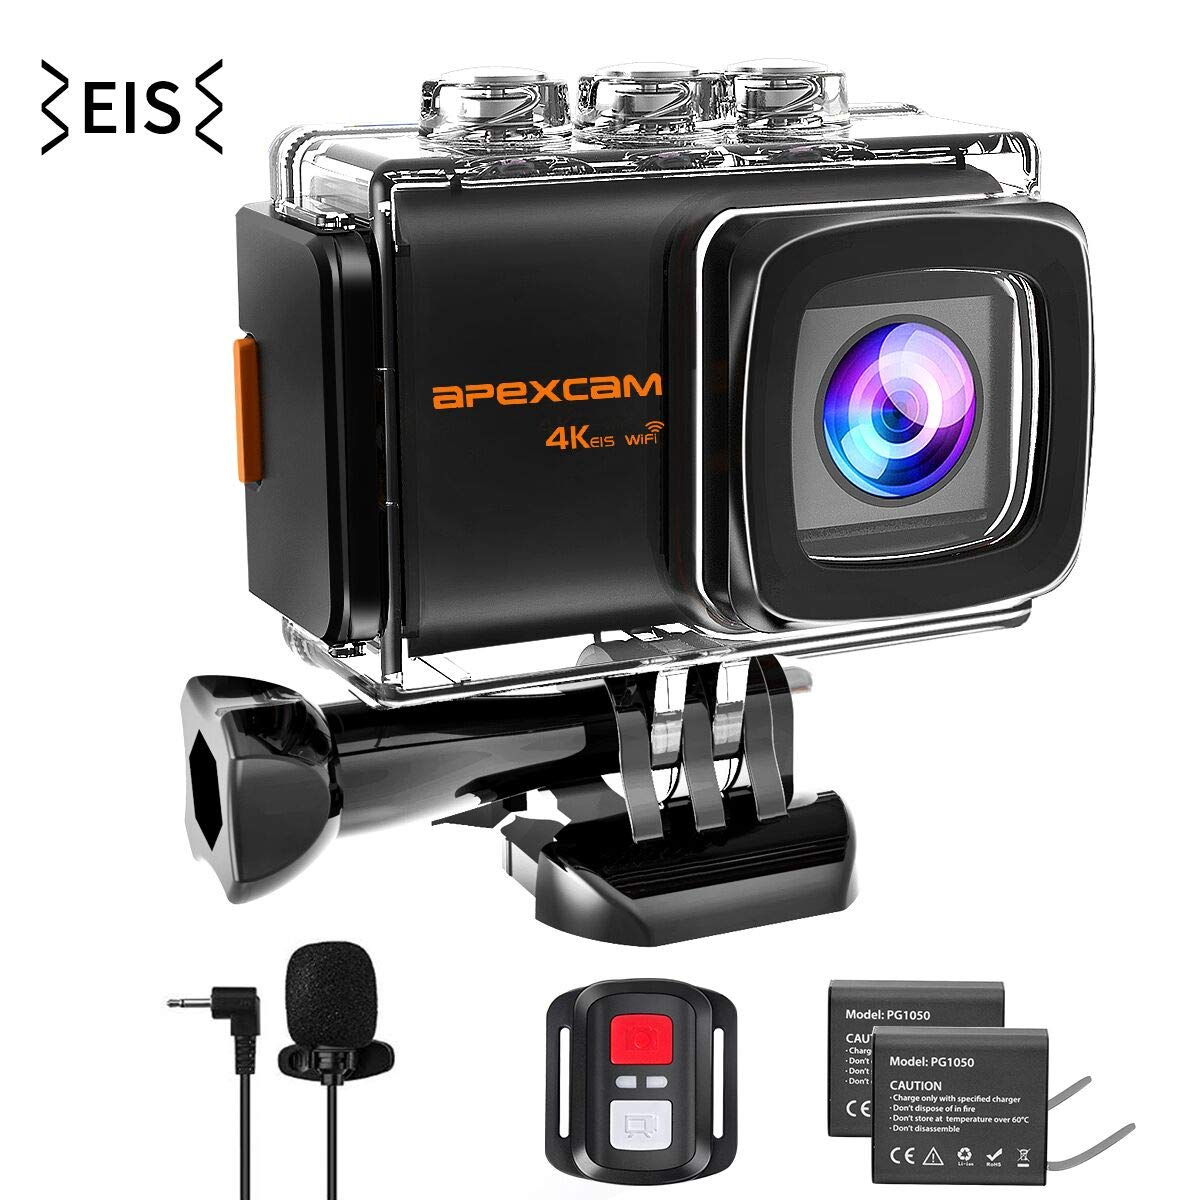 Apexcam 4K 20MP WiFi Action Camera EIS Ultra HD Sports Camera Underwater Waterproof 40M Camcorders External Mic 170°Wide-Angle 2.0''LCD 2.4G Remote 2 Rechargeable Batteries and Accessories